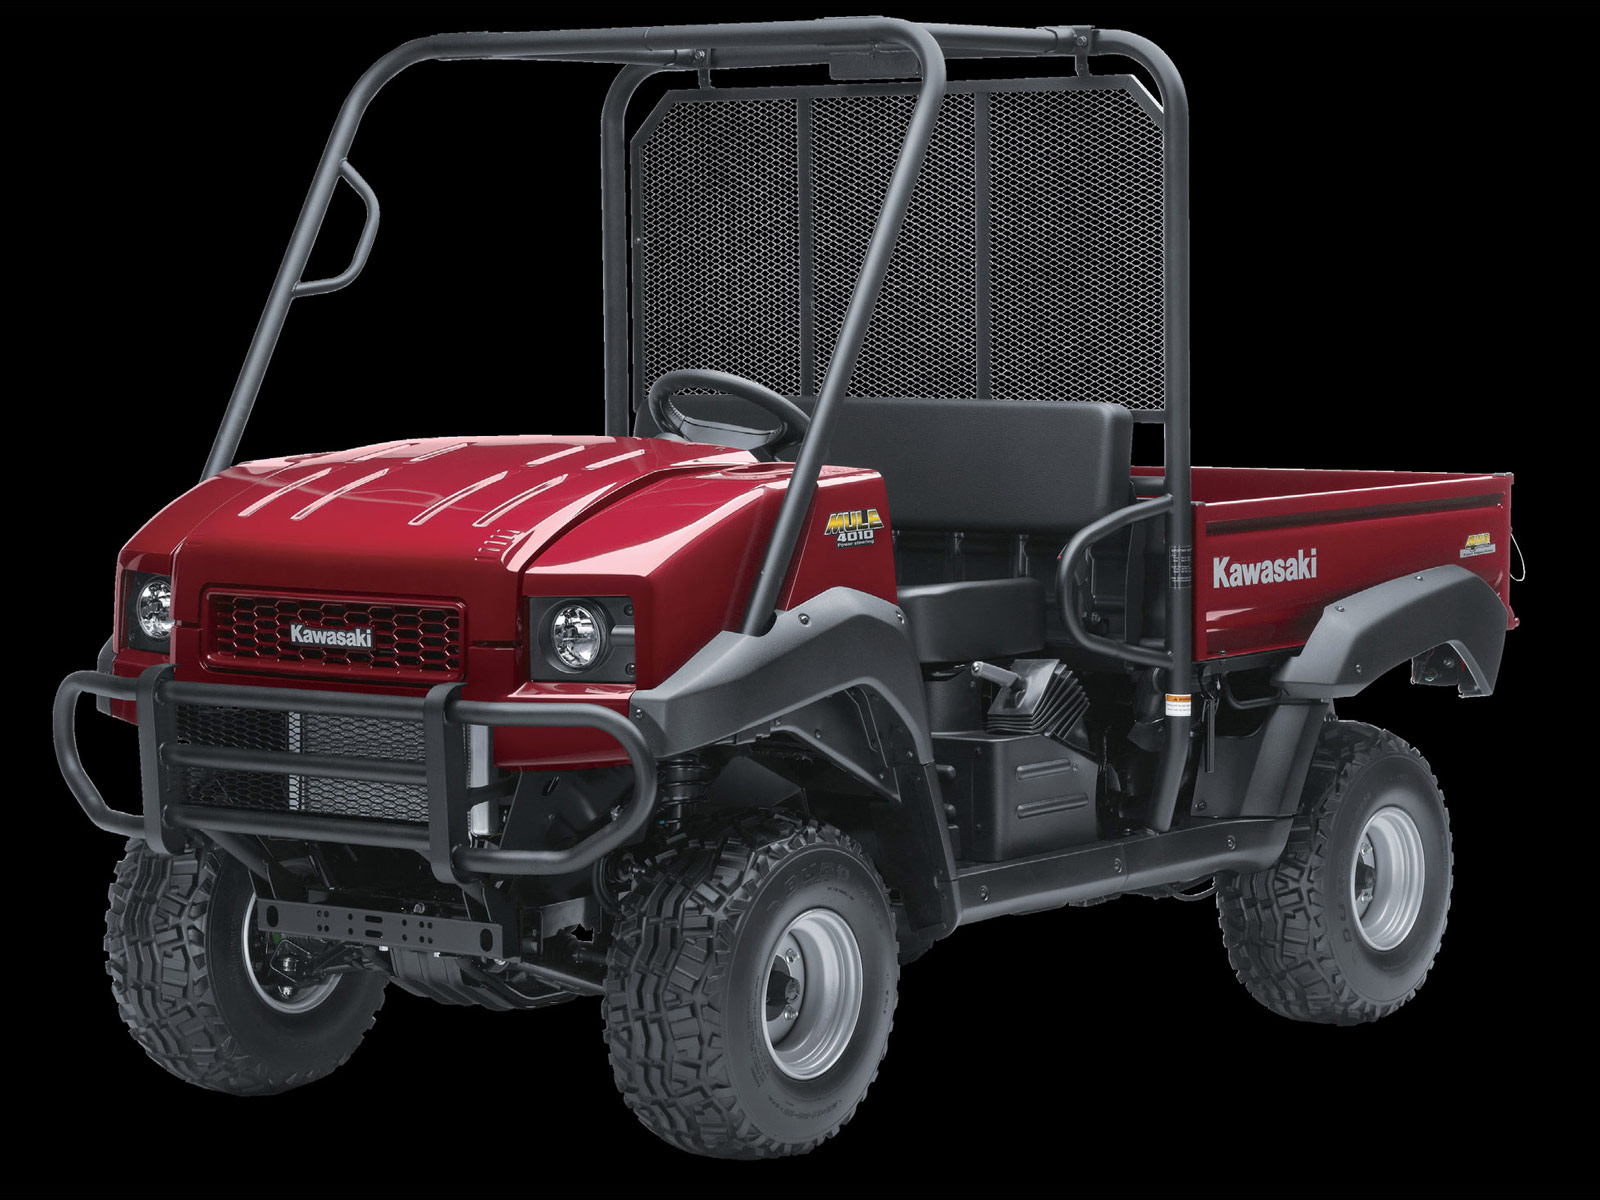 small resolution of 2013 kawasaki mule 4010 4x4 atv pictures 480x360 pixels